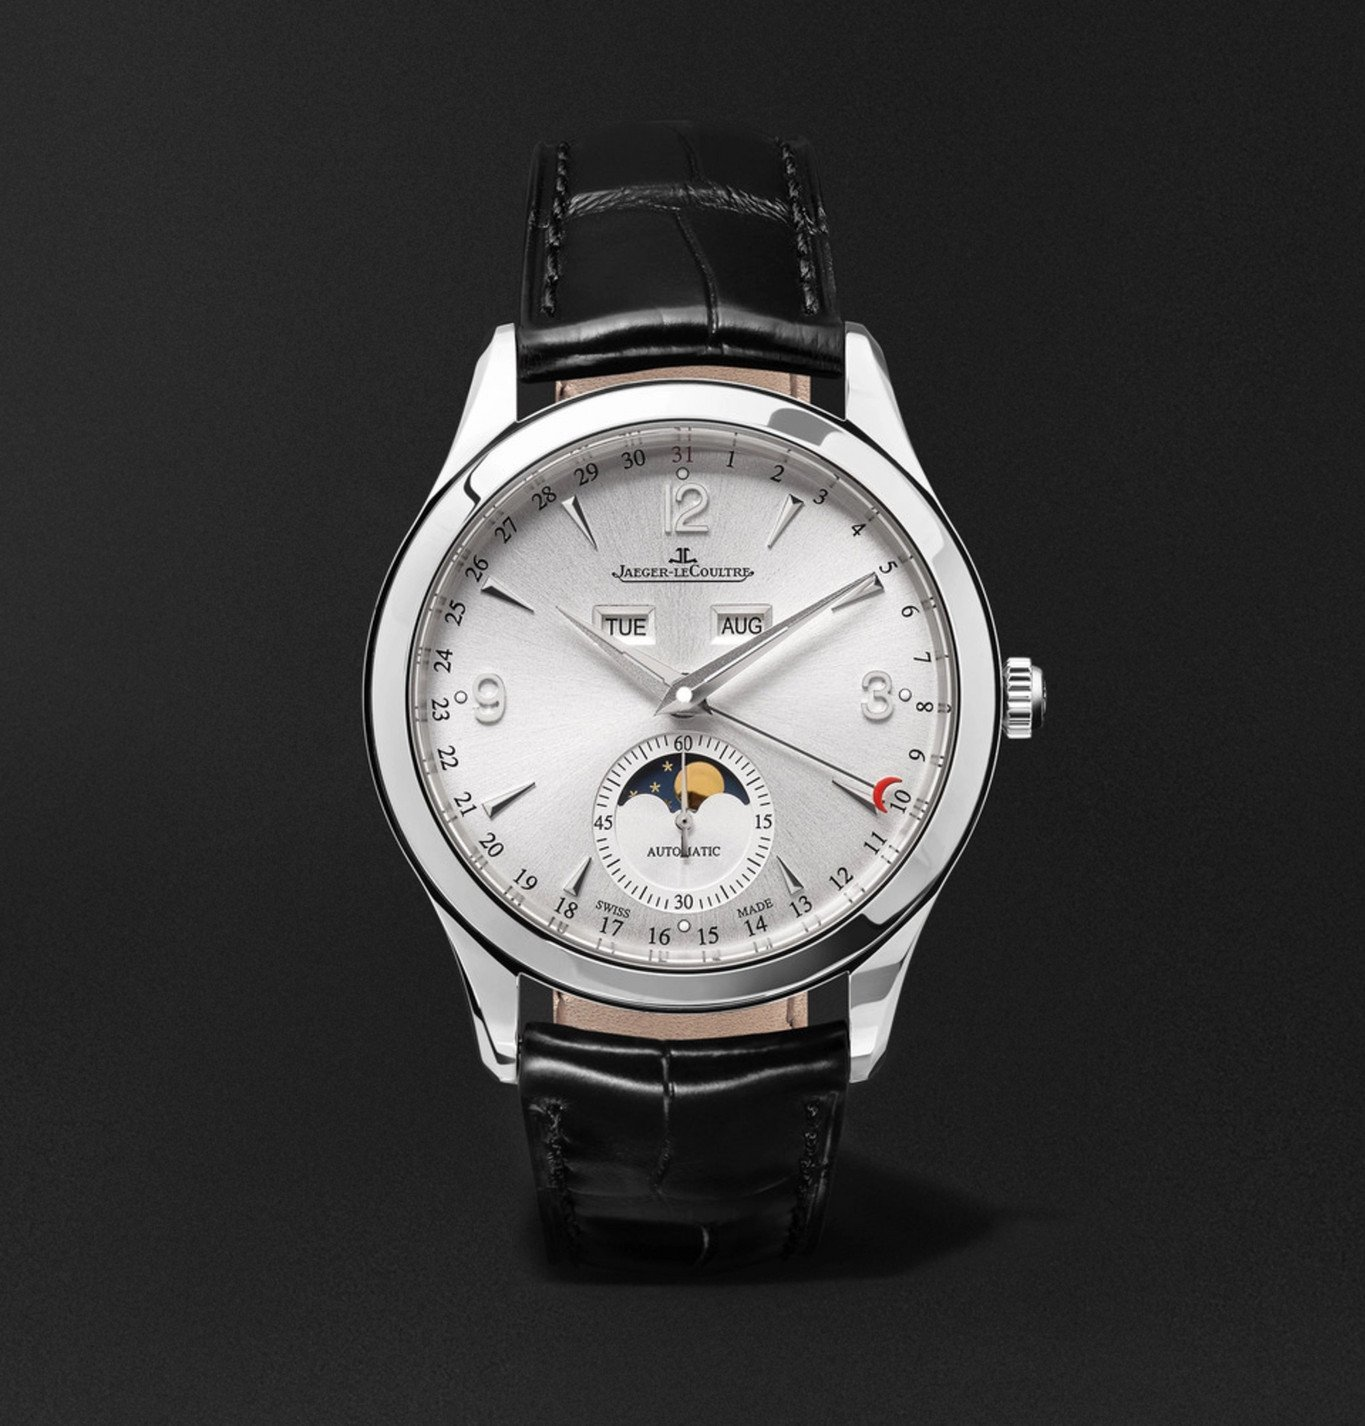 Photo: Jaeger-LeCoultre - Master Calendar Automatic Stainless Steel and Alligator Watch, Ref. No. Q1558420 - Silver